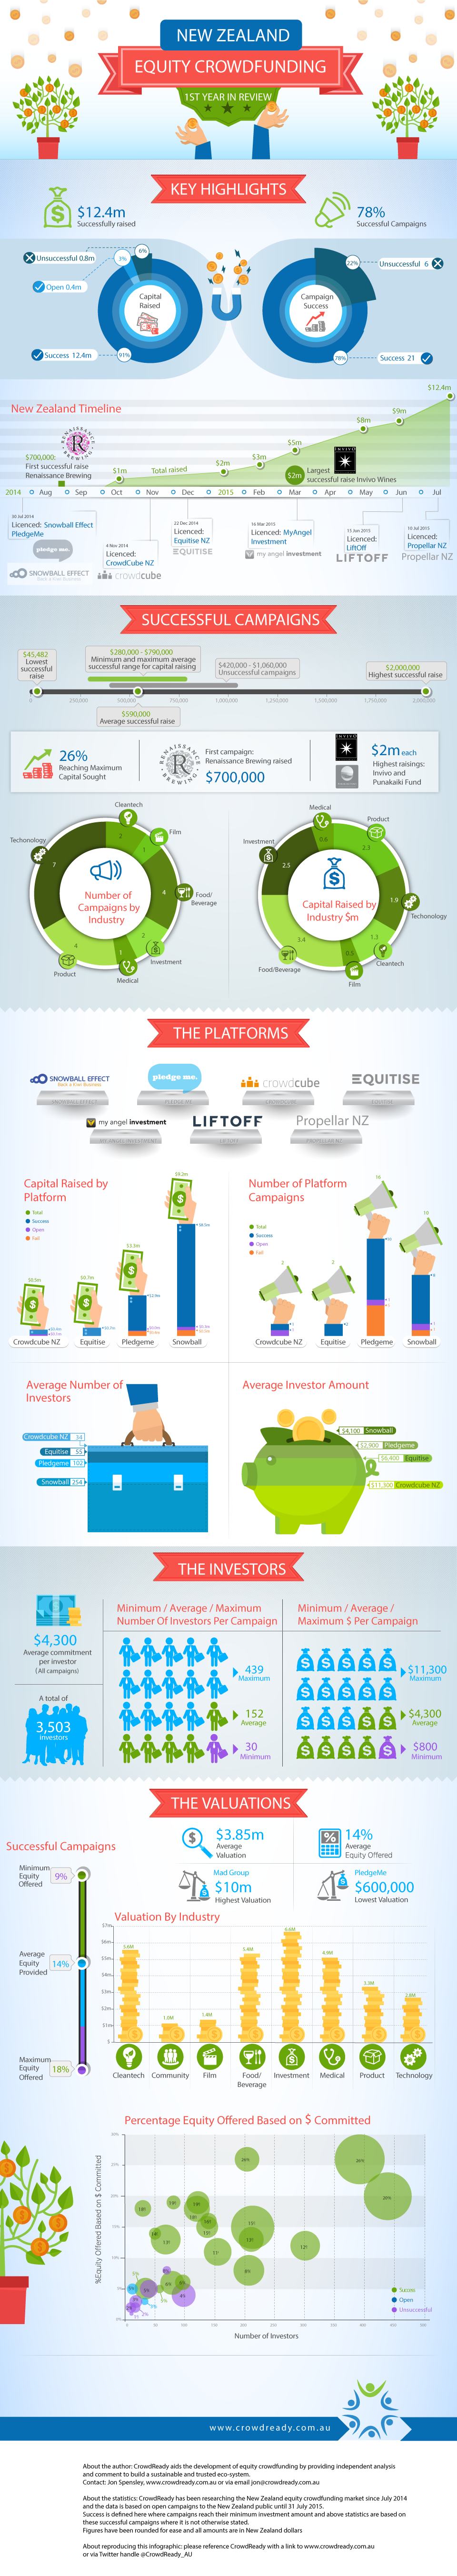 CrowdReady NZ Equity Crowdfunding Infographic Statistics